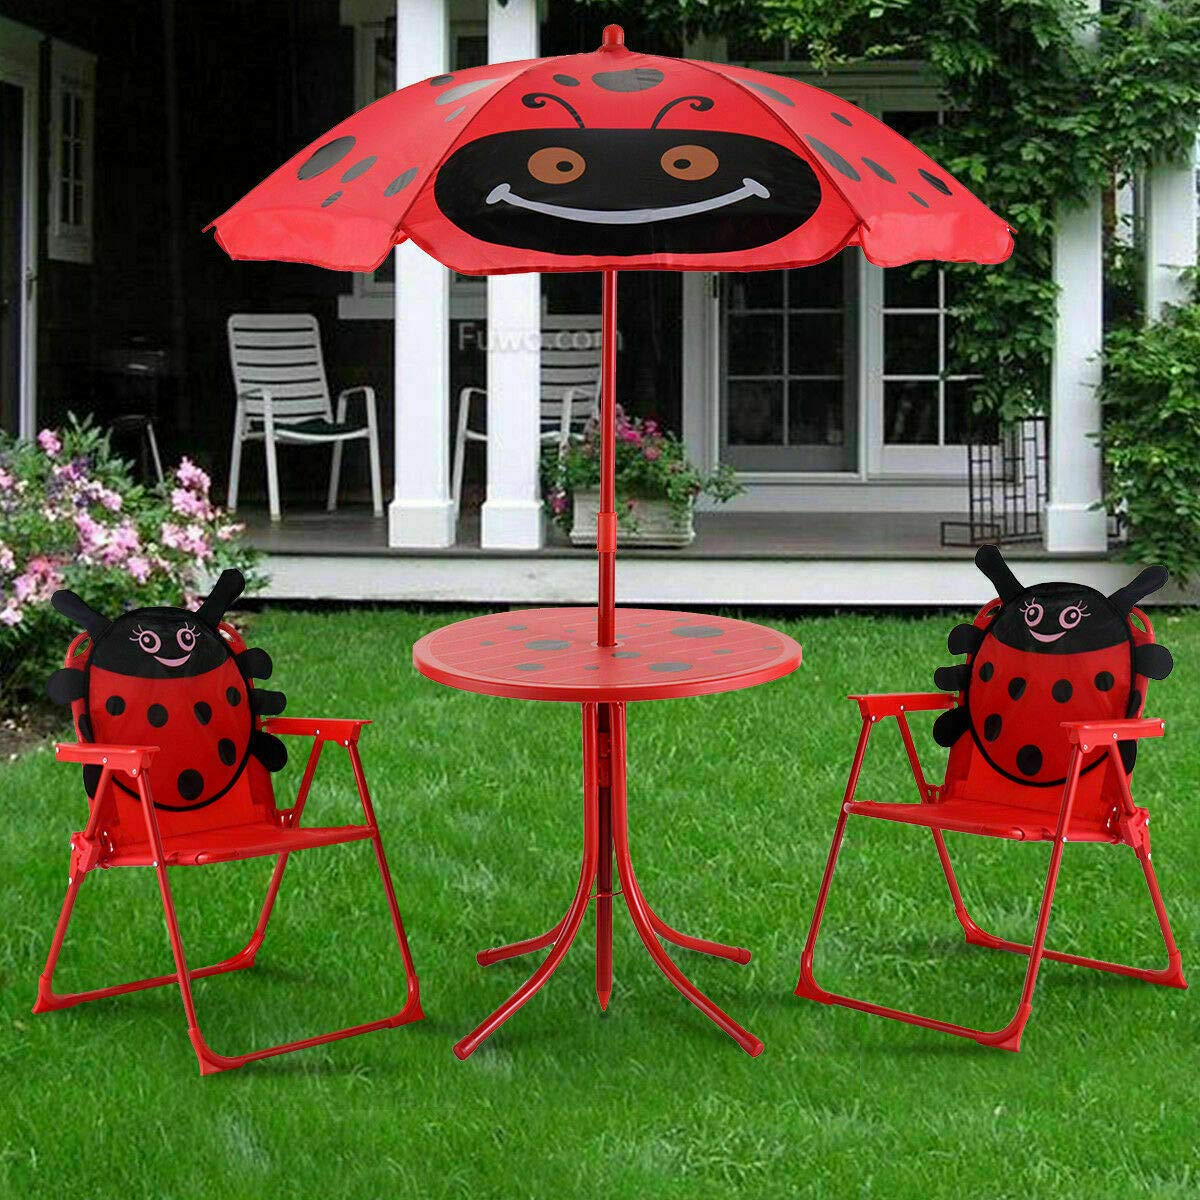 Set of 3 Red Beetle Ladybugs Pattern Kid Chair+Table+Umbrella Patio Garden Backyard Front yard Children Furniture Utility Kid room Foldable Easy Storage Light Weight Trip Party Event Picnic Home by Prettyshop4246 (Image #3)